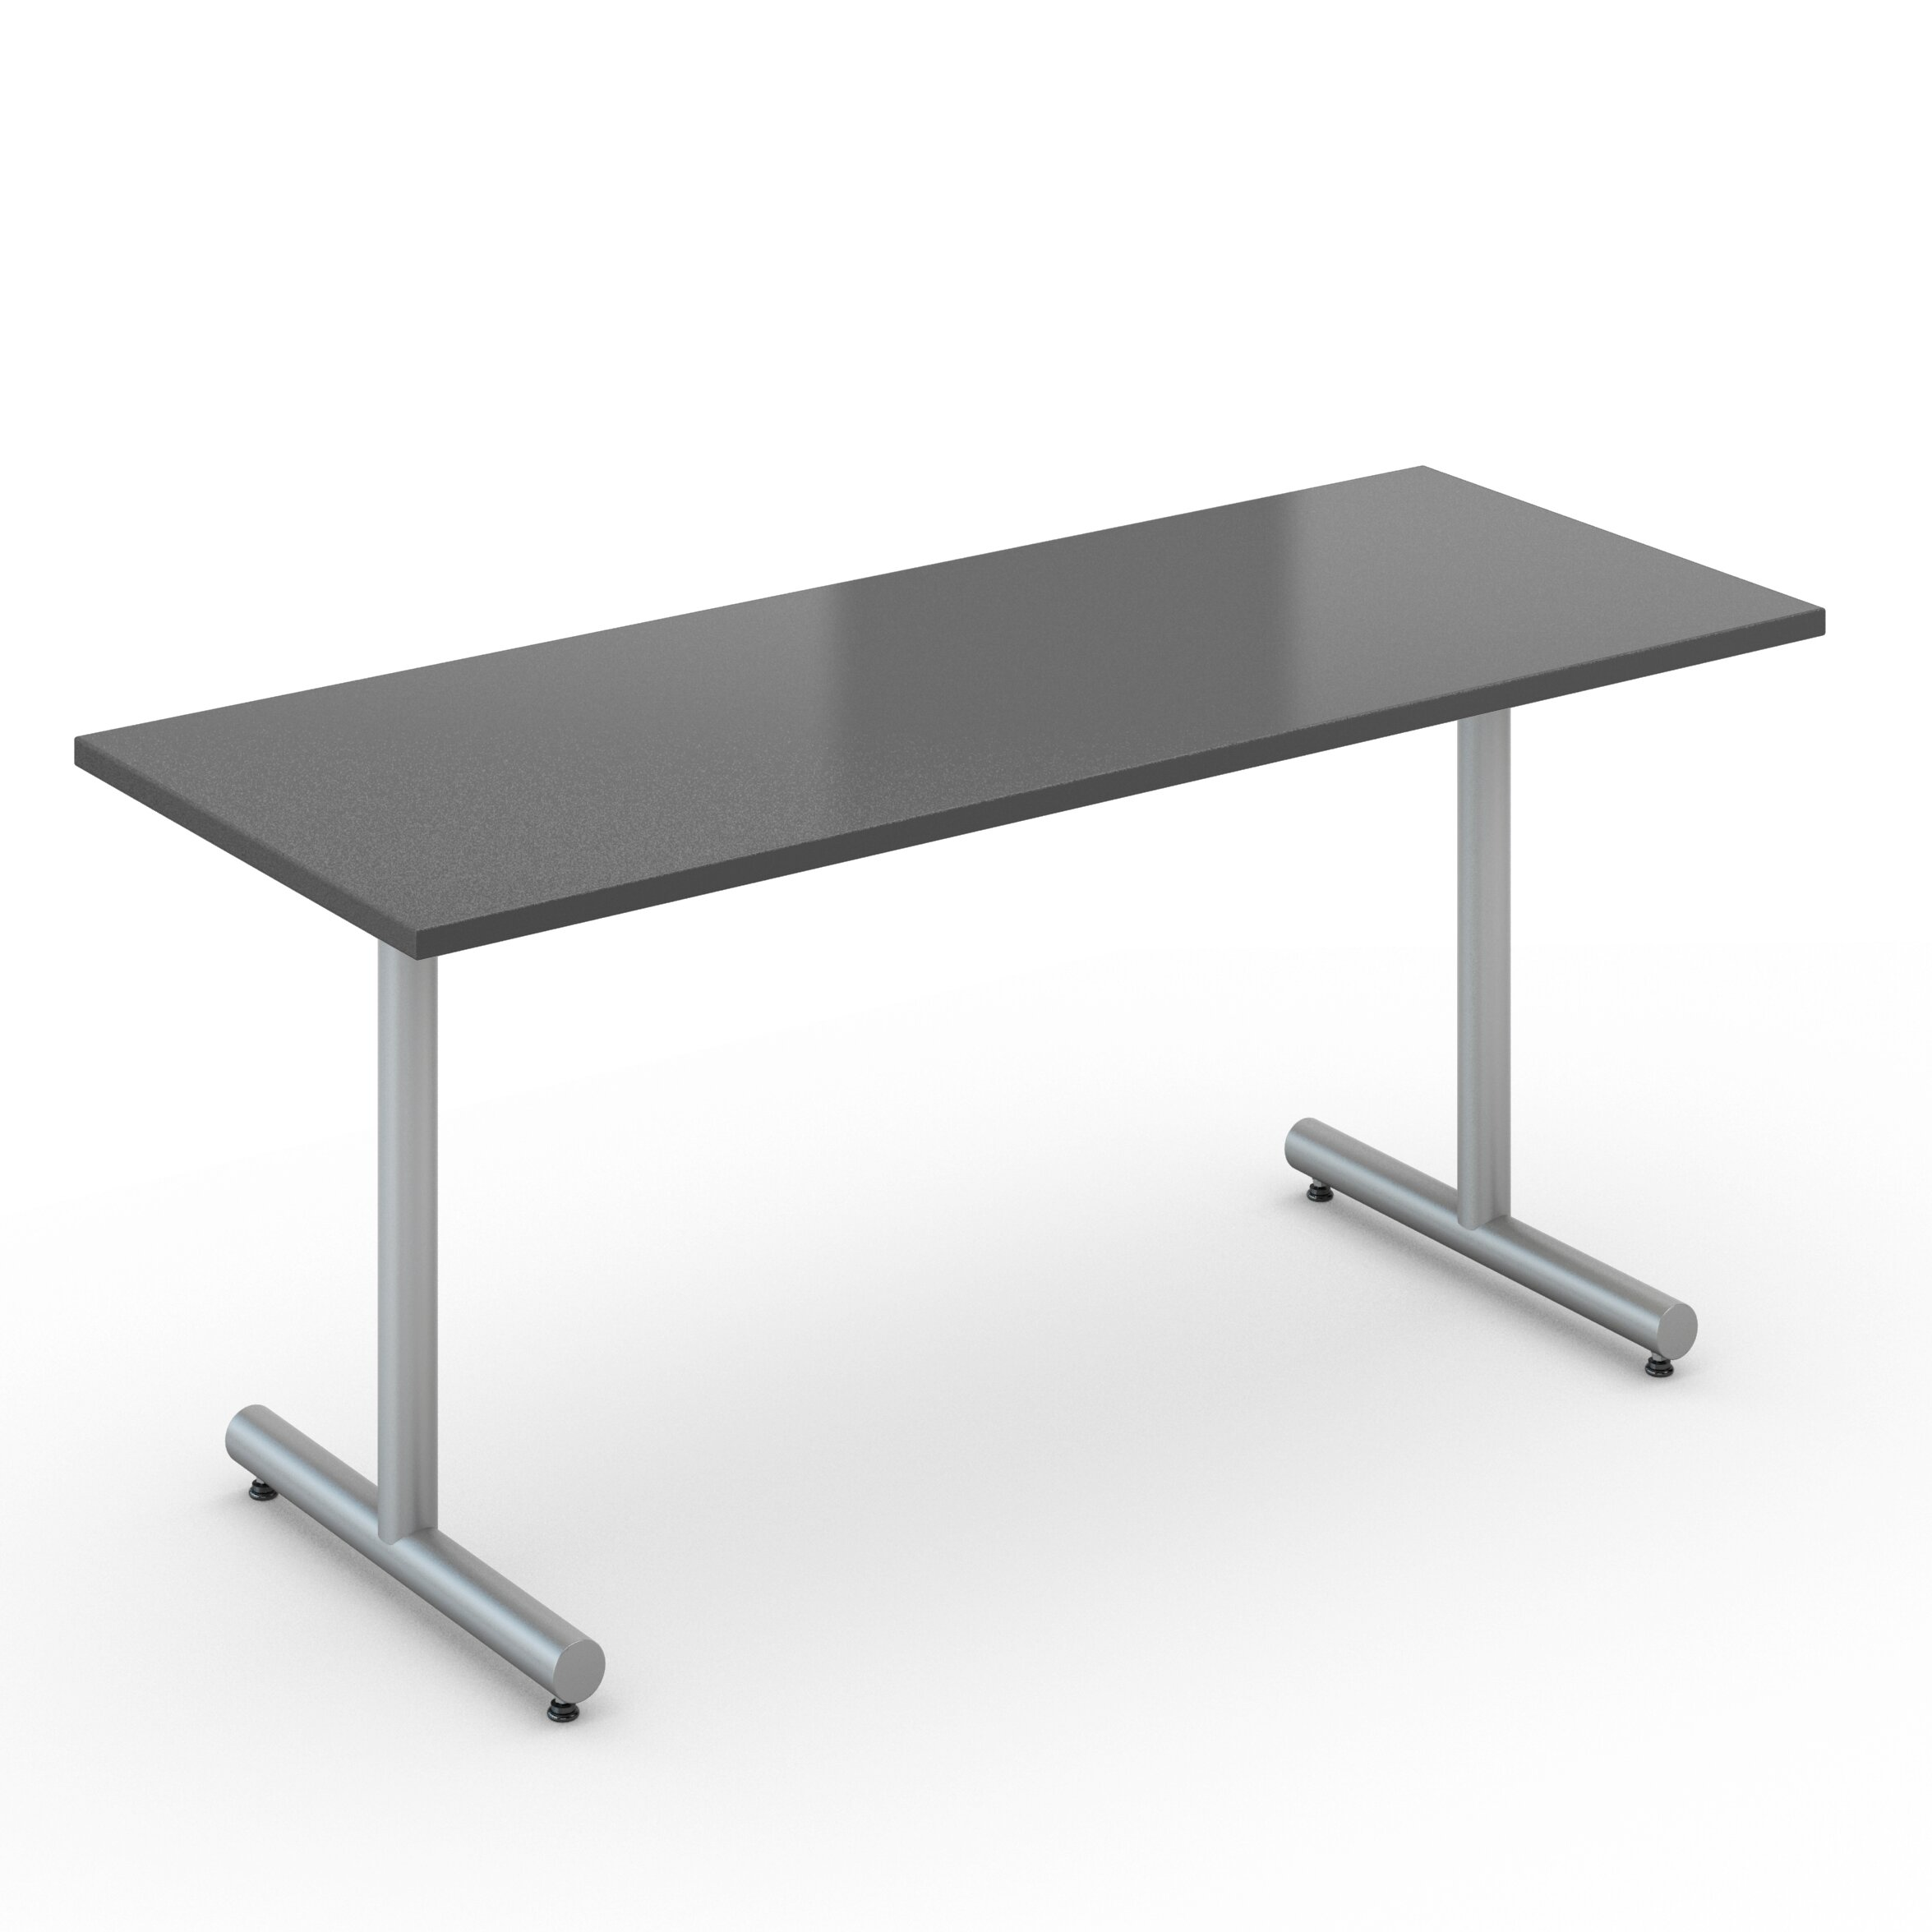 Izzy Design Saturn Desk Size Training Table amp Reviews